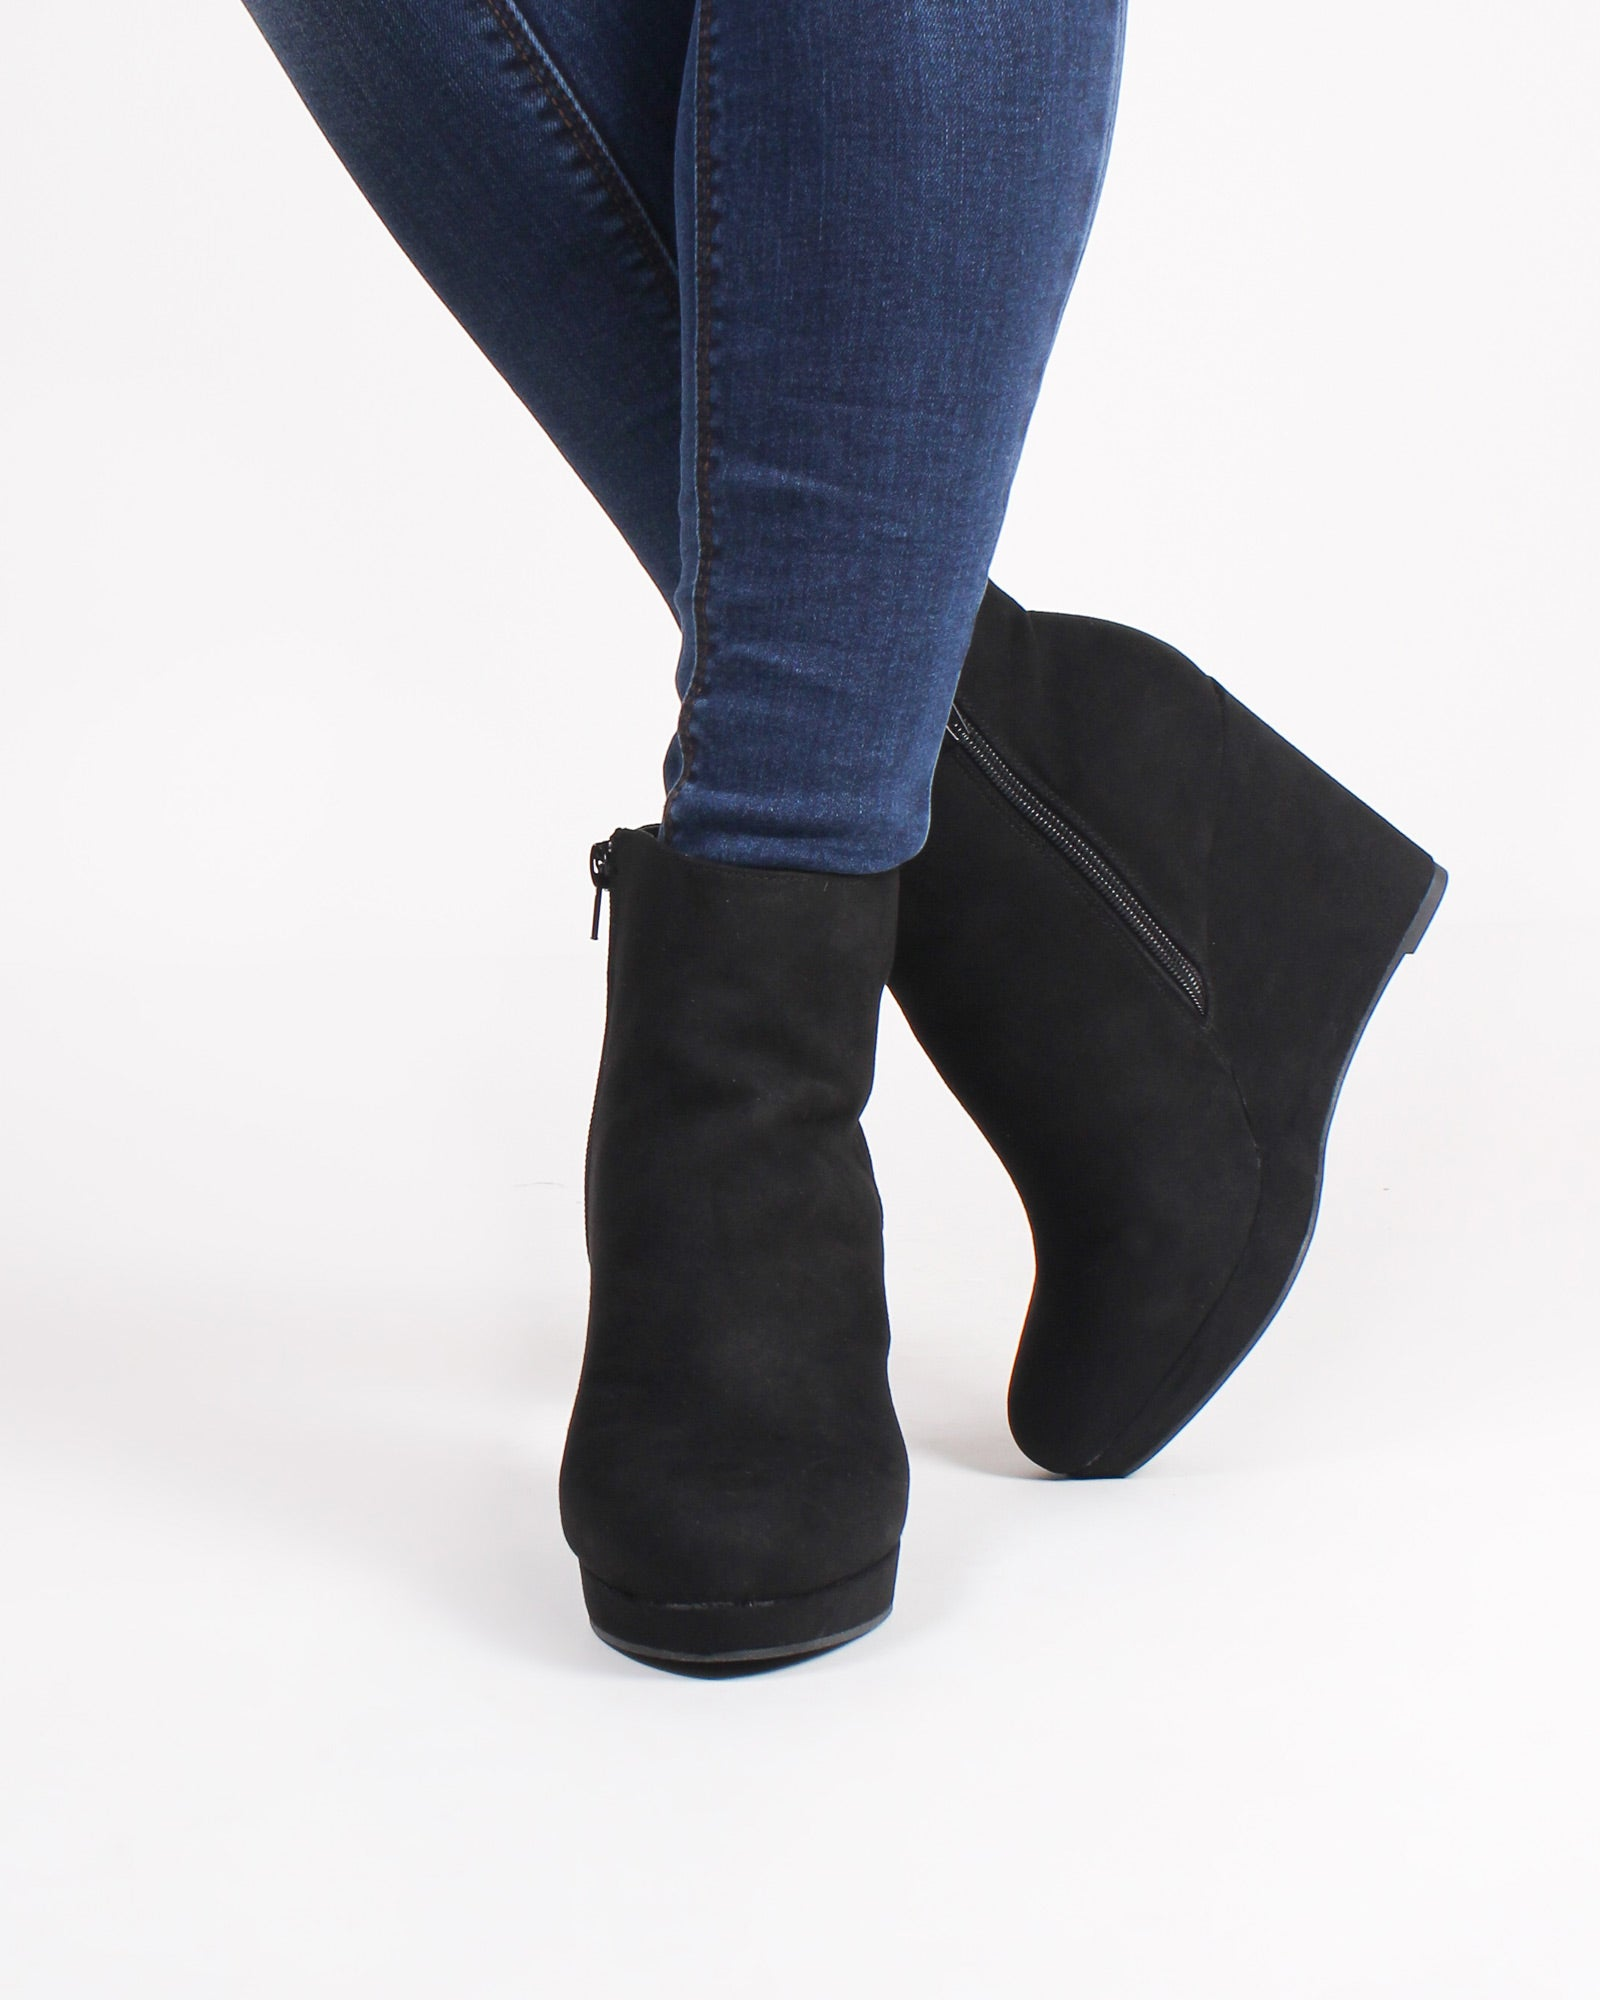 Fashion Q Shop Q Rockport Wedge Booties (Black) MANIFEST-11